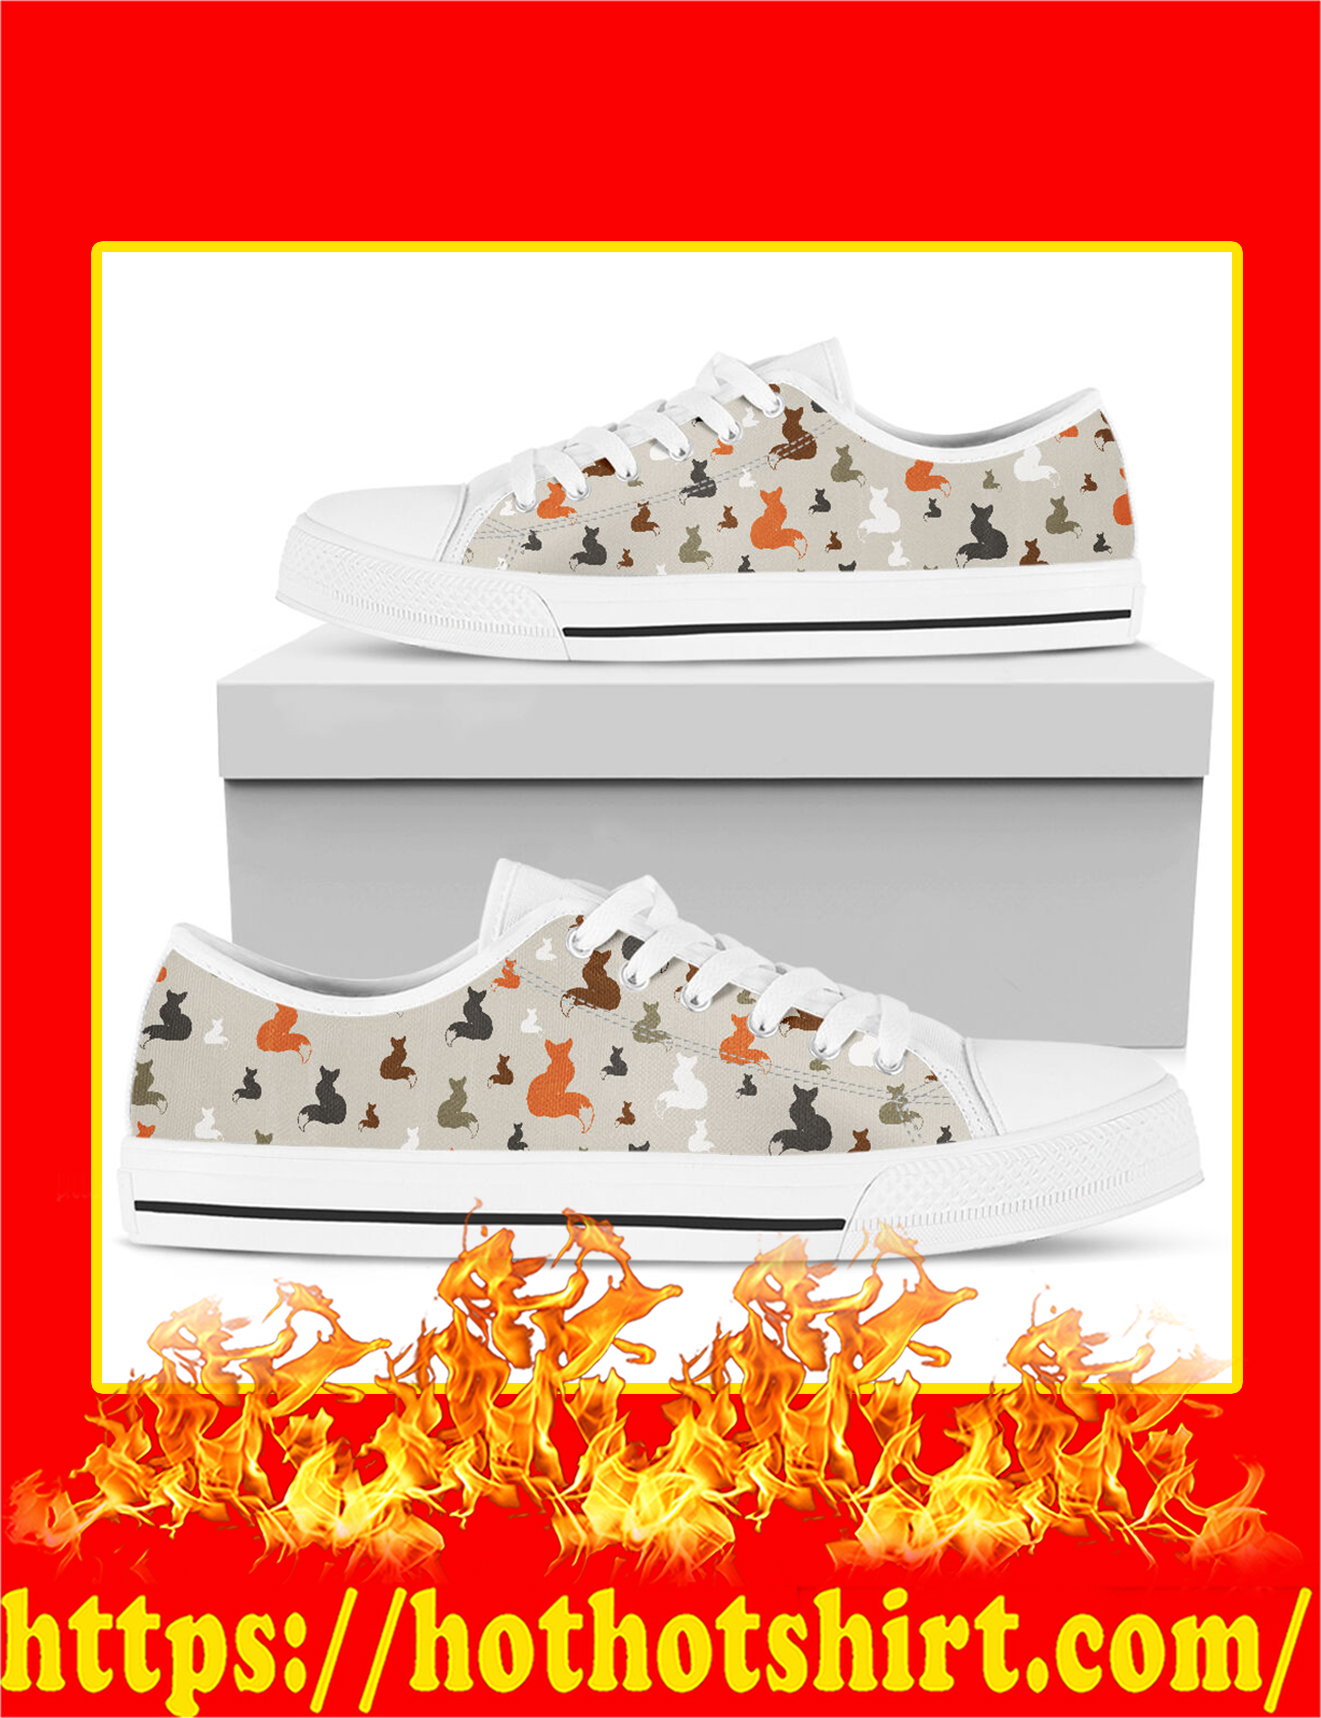 Fox Low Top Shoes - Pic 3